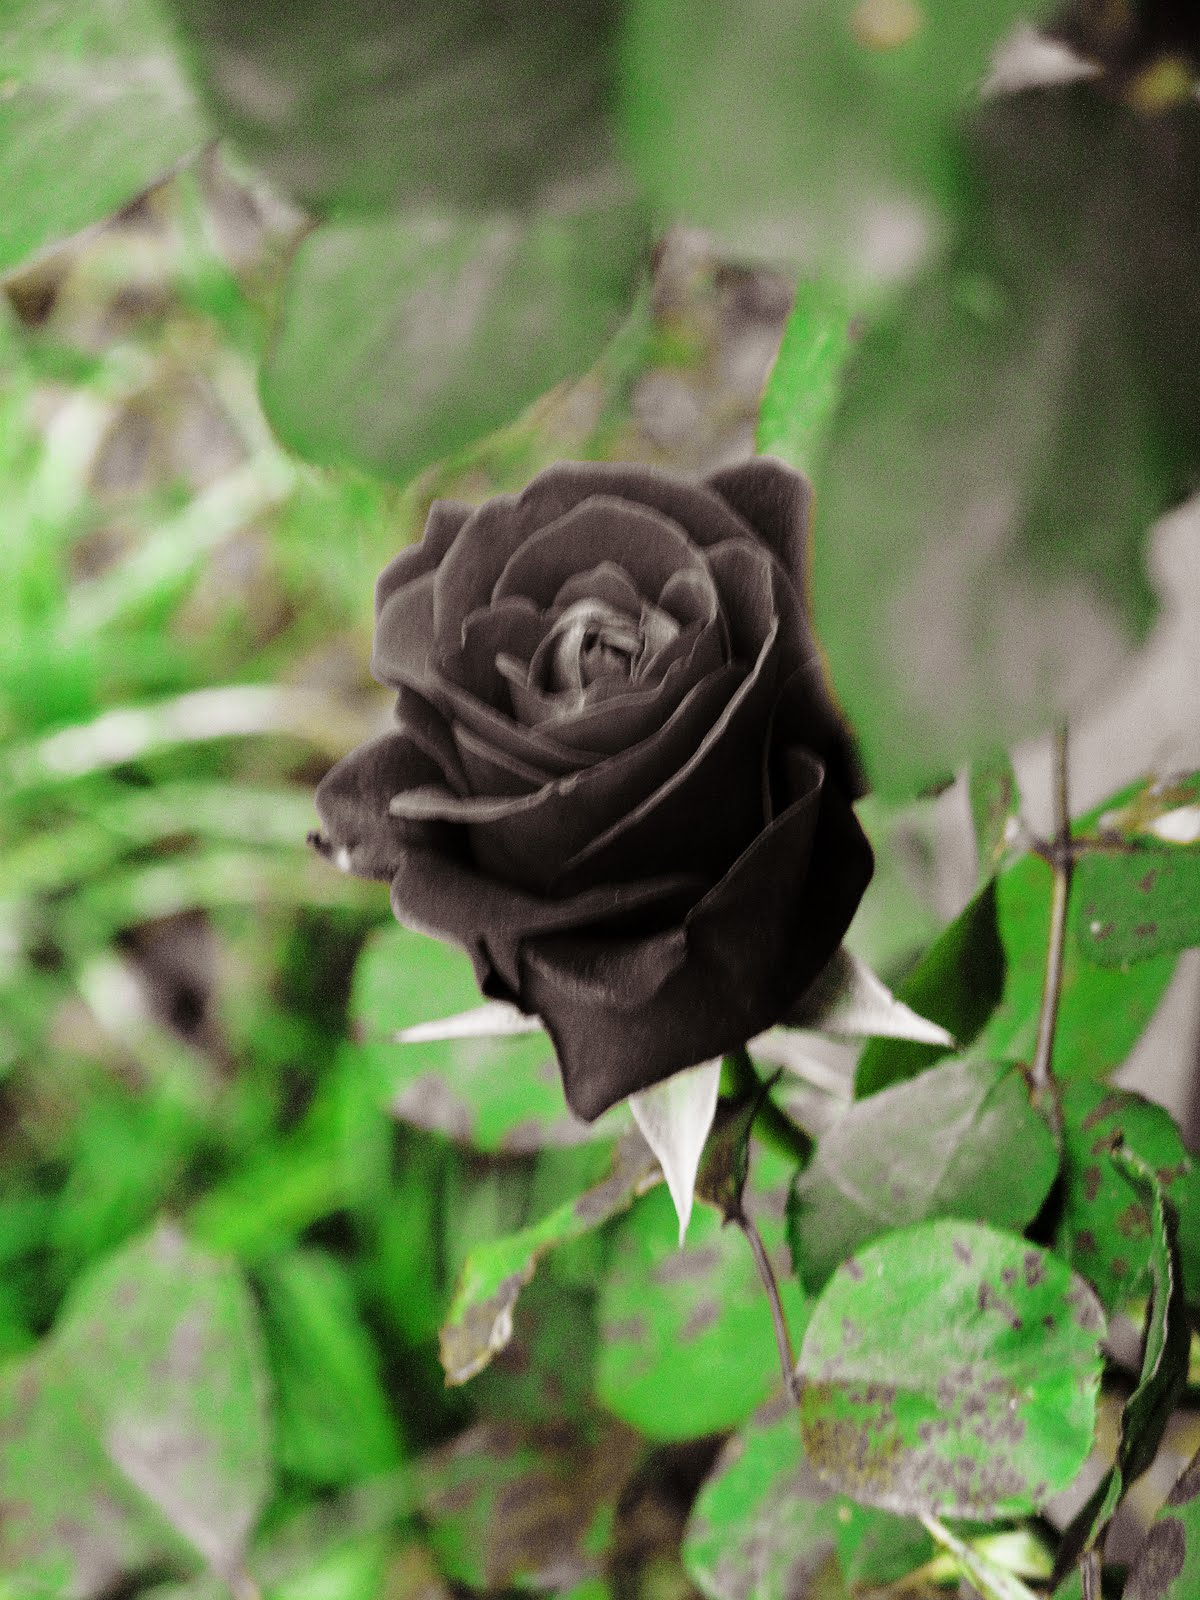 Real Black Roses |Rose Wallpapers